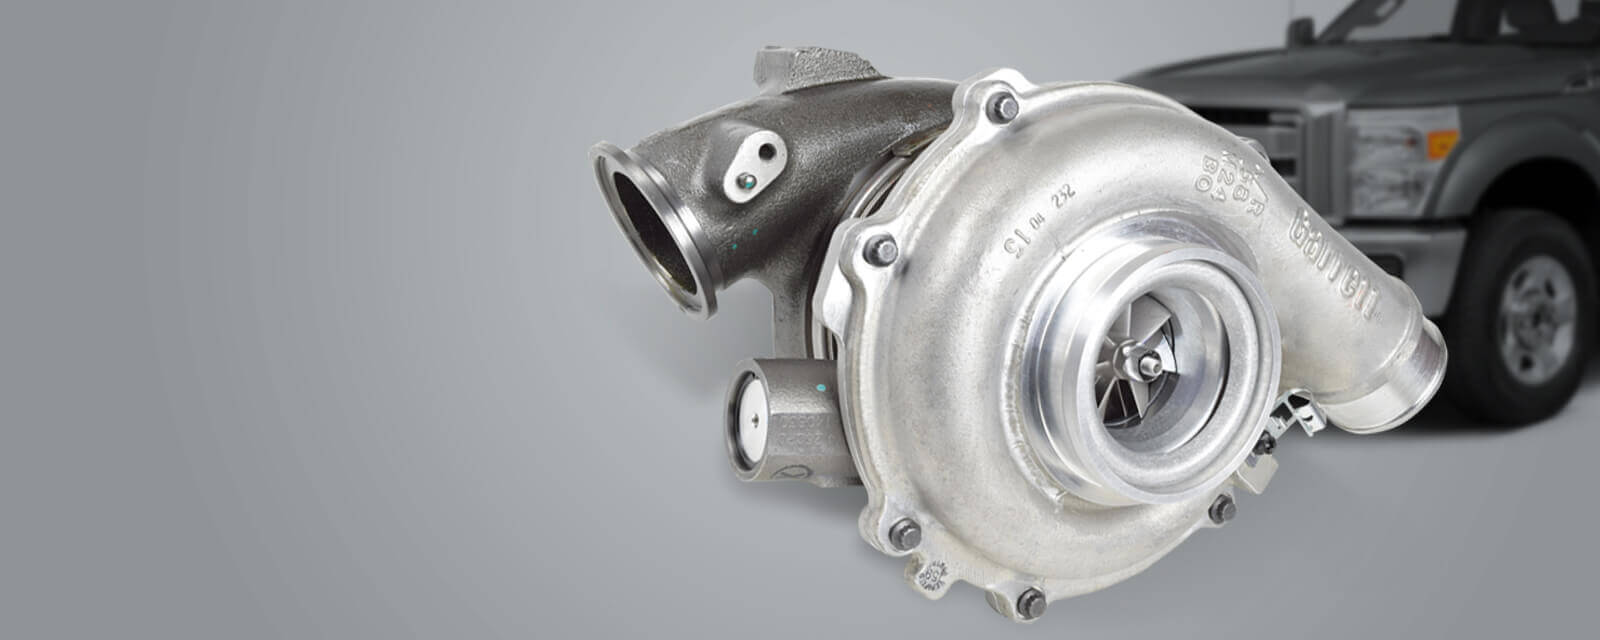 Garrett Turbochargers for Six Liter Applications